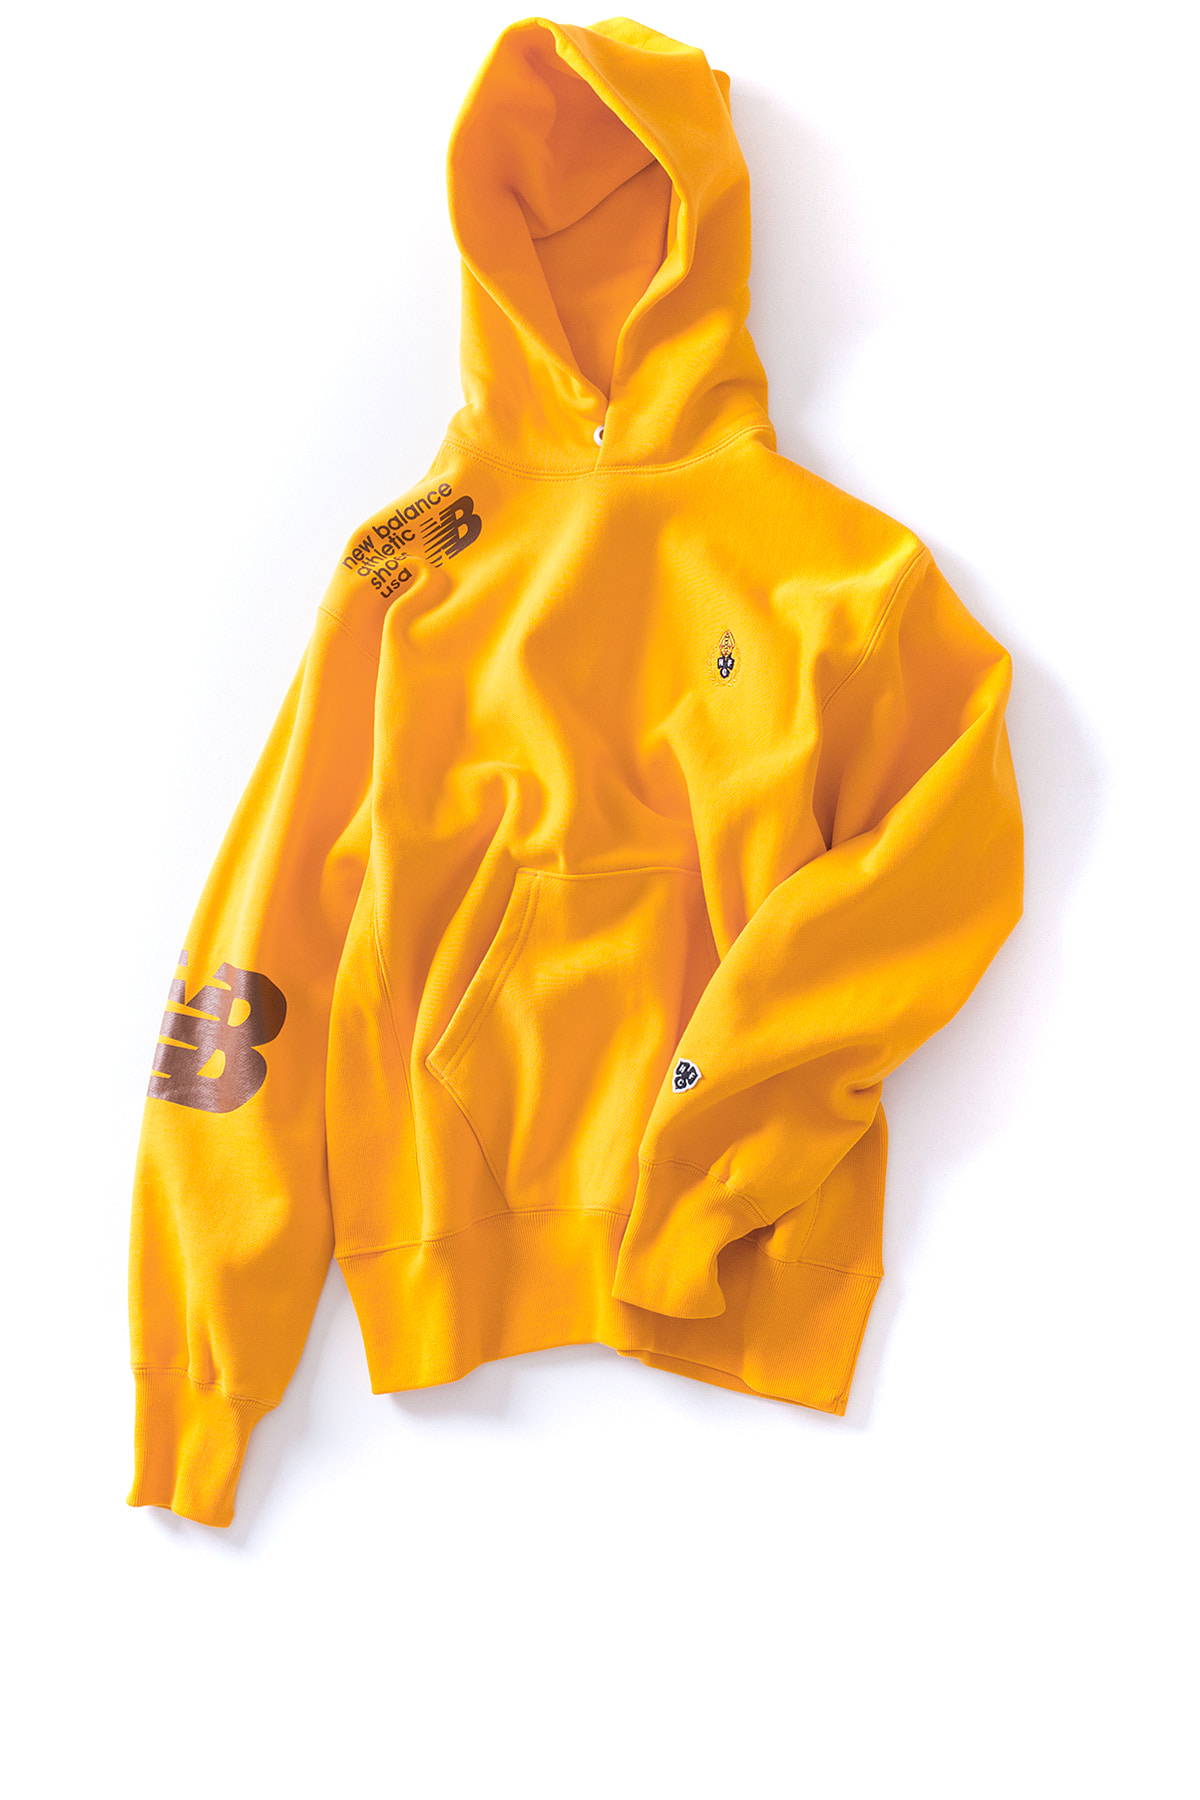 NB X Heritage Floss : Locker Room Hoodie (Yellow)